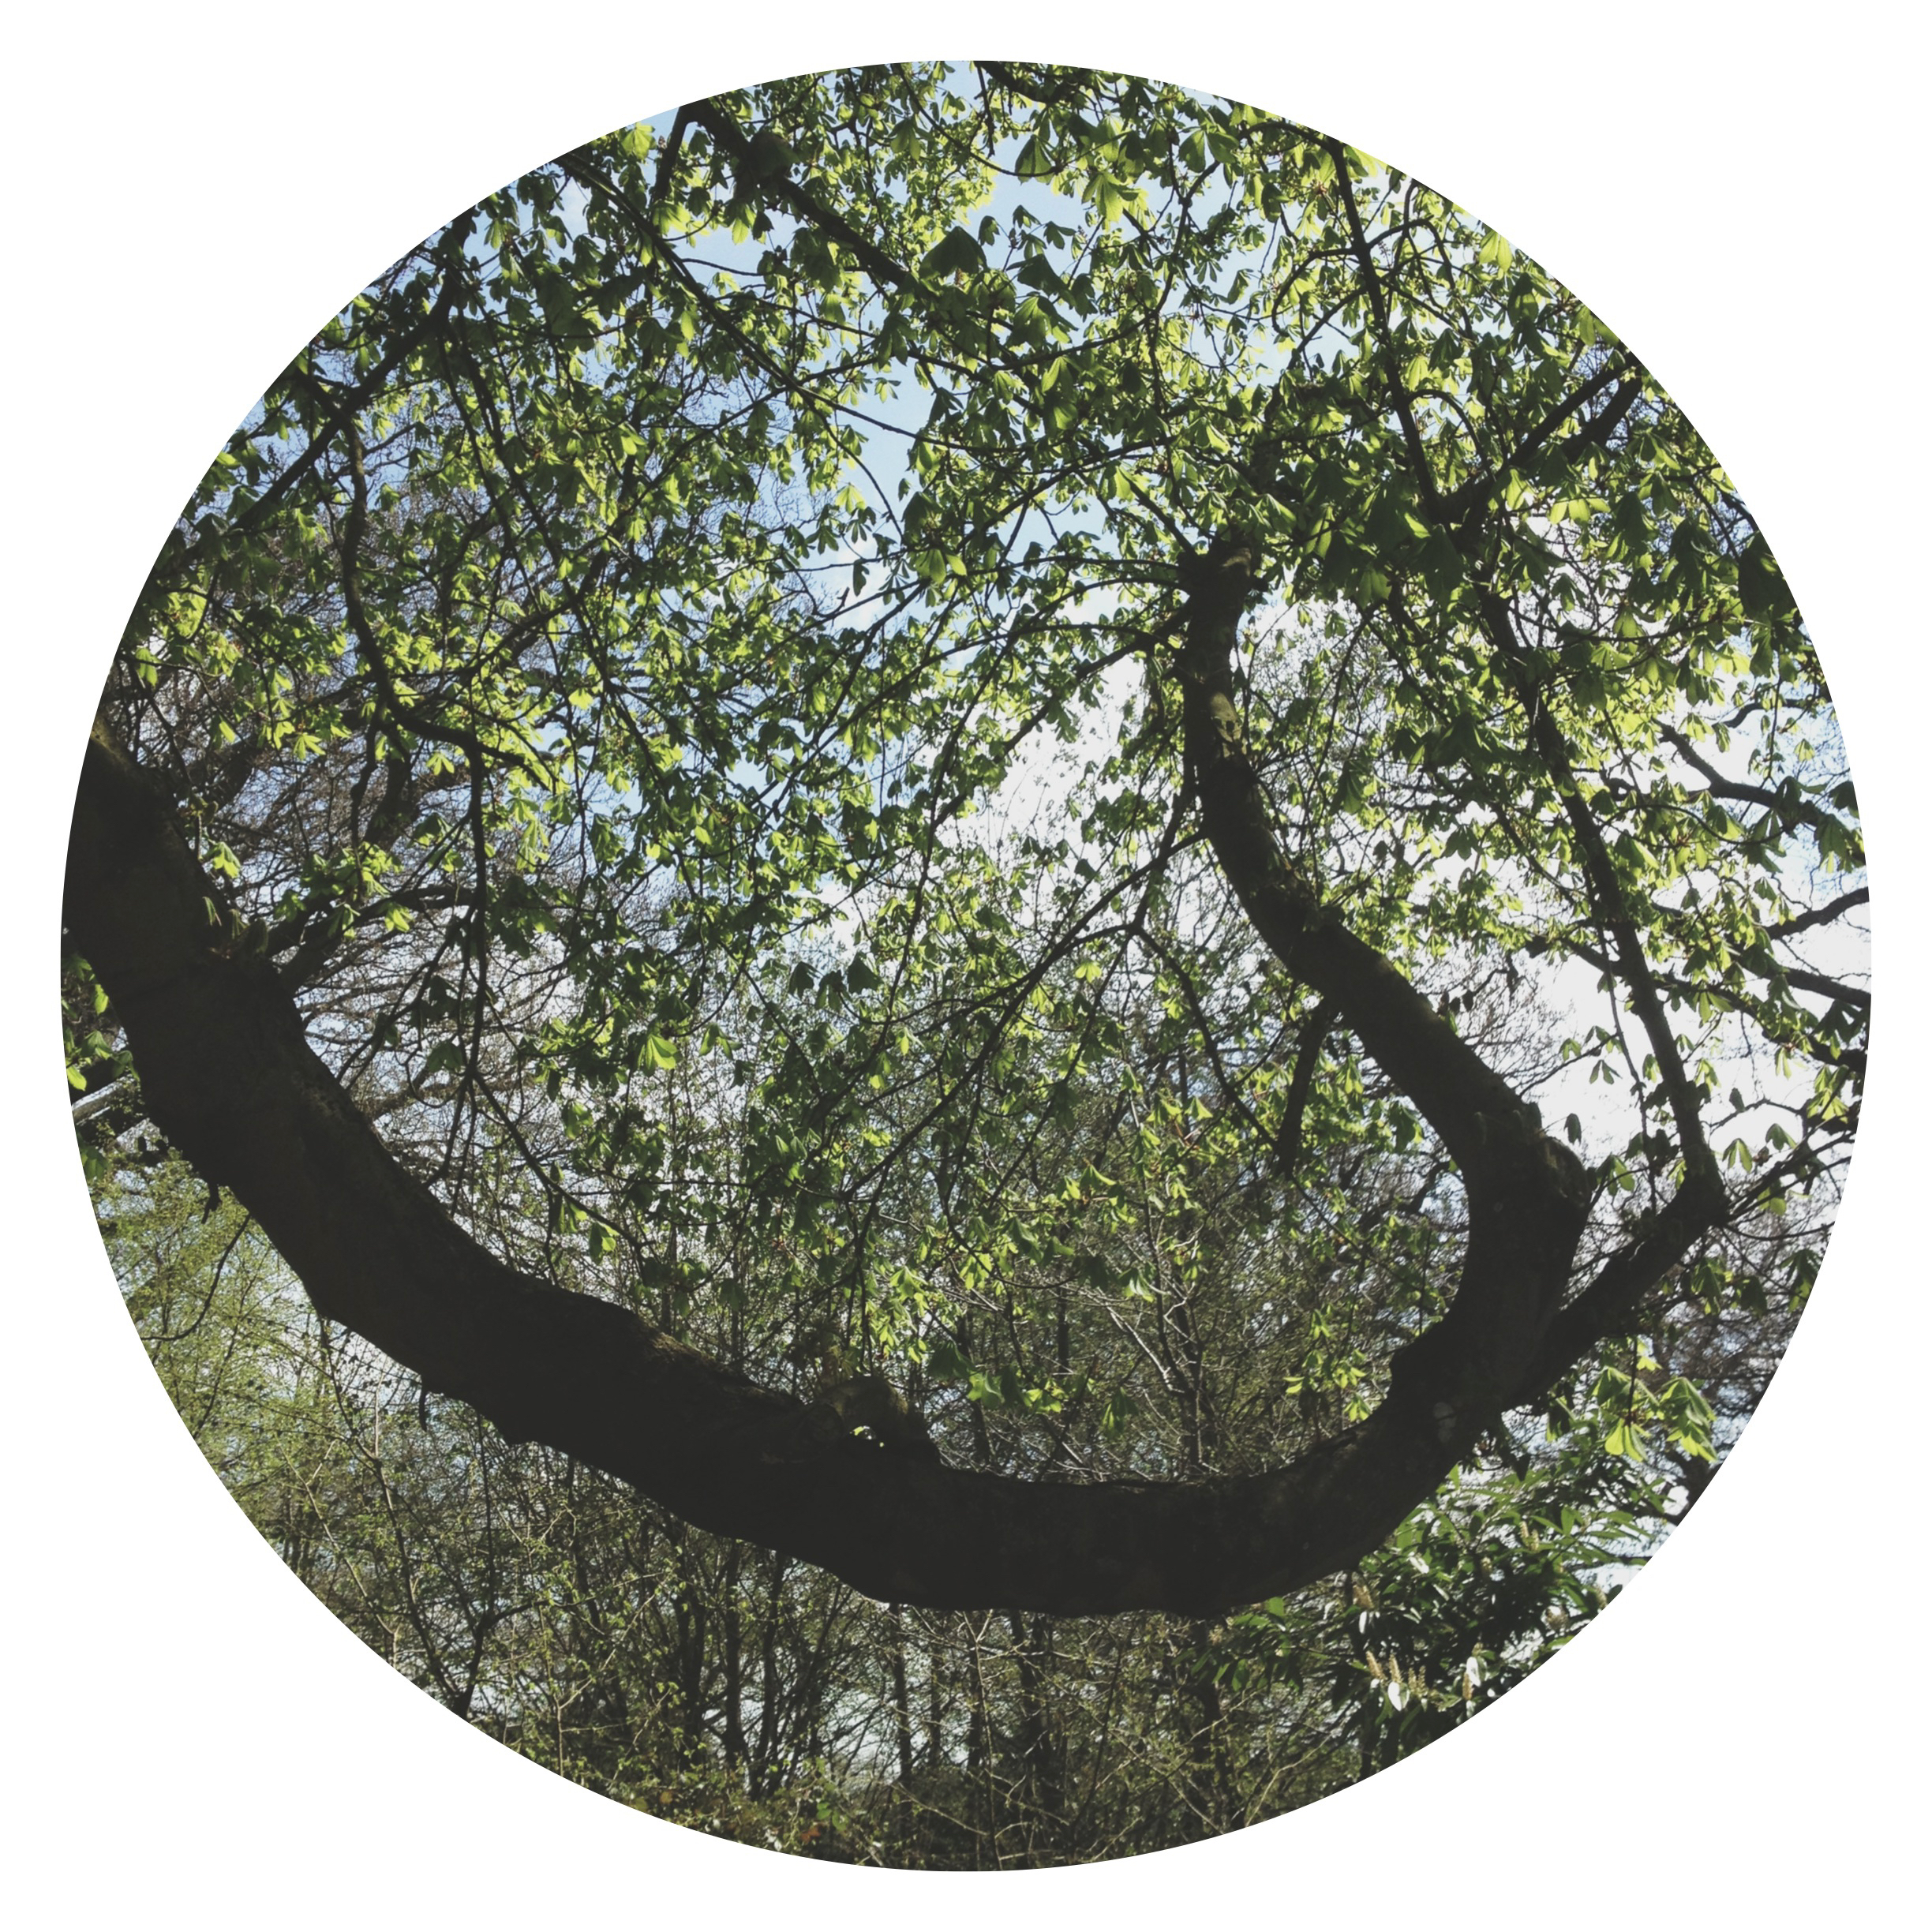 A circular photograph featuring a long tree branch that starts on the left side, drops to follow the curve of the photograph and rises again toward the upper right hand side. The background is the surrounding leafy woodland and tree tops